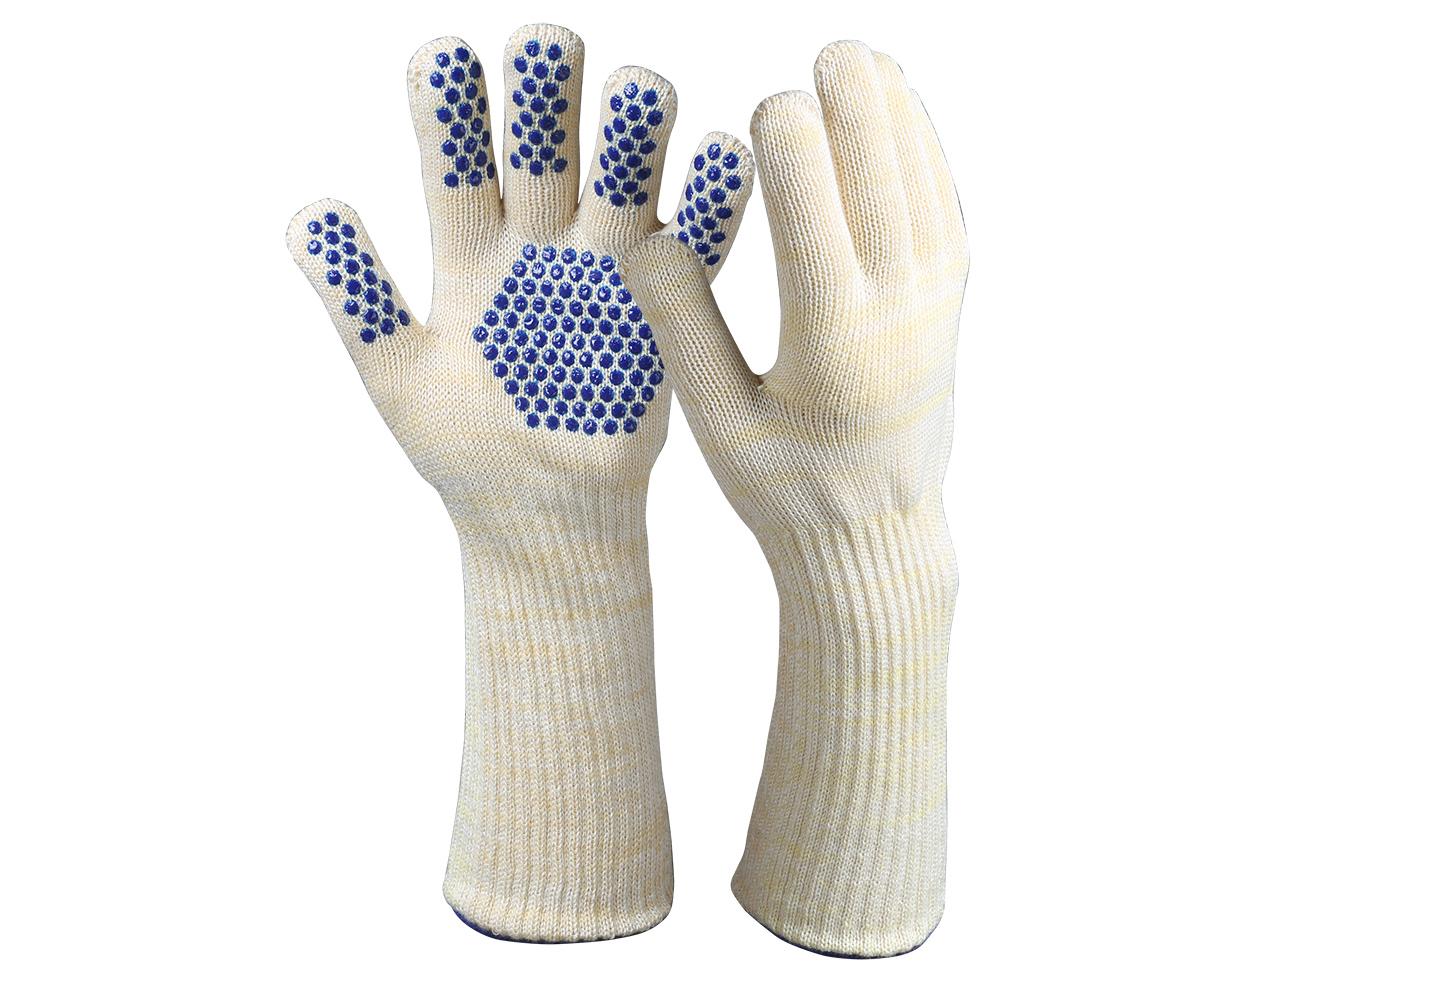 Chef Cooking Gloves in The Kitchen/HRG-002